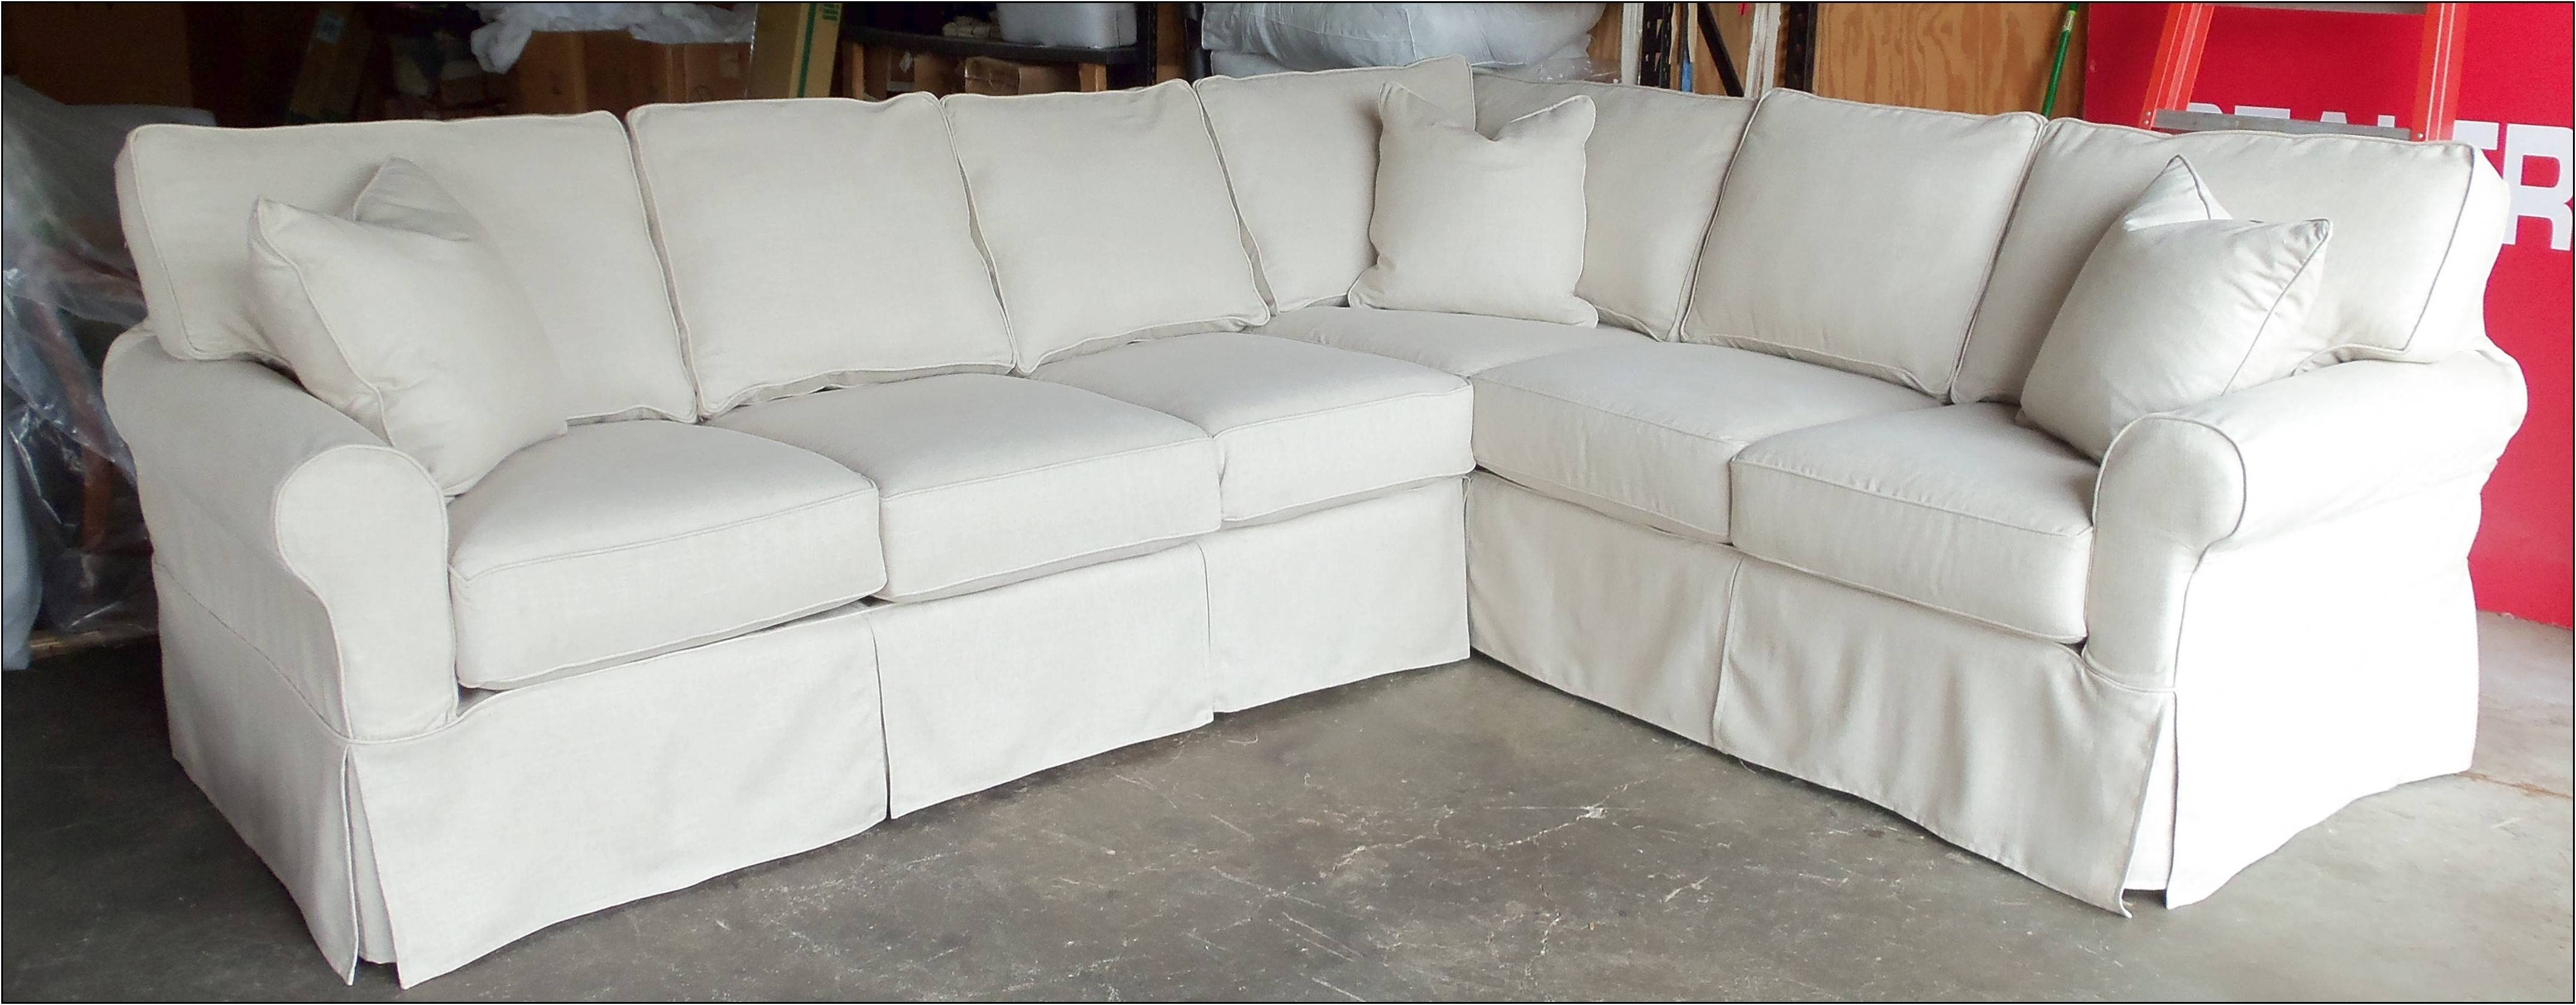 Leather Sectional Sofa Covers | Sofas Decoration with Slipcover For Leather Sectional Sofas (Image 18 of 30)